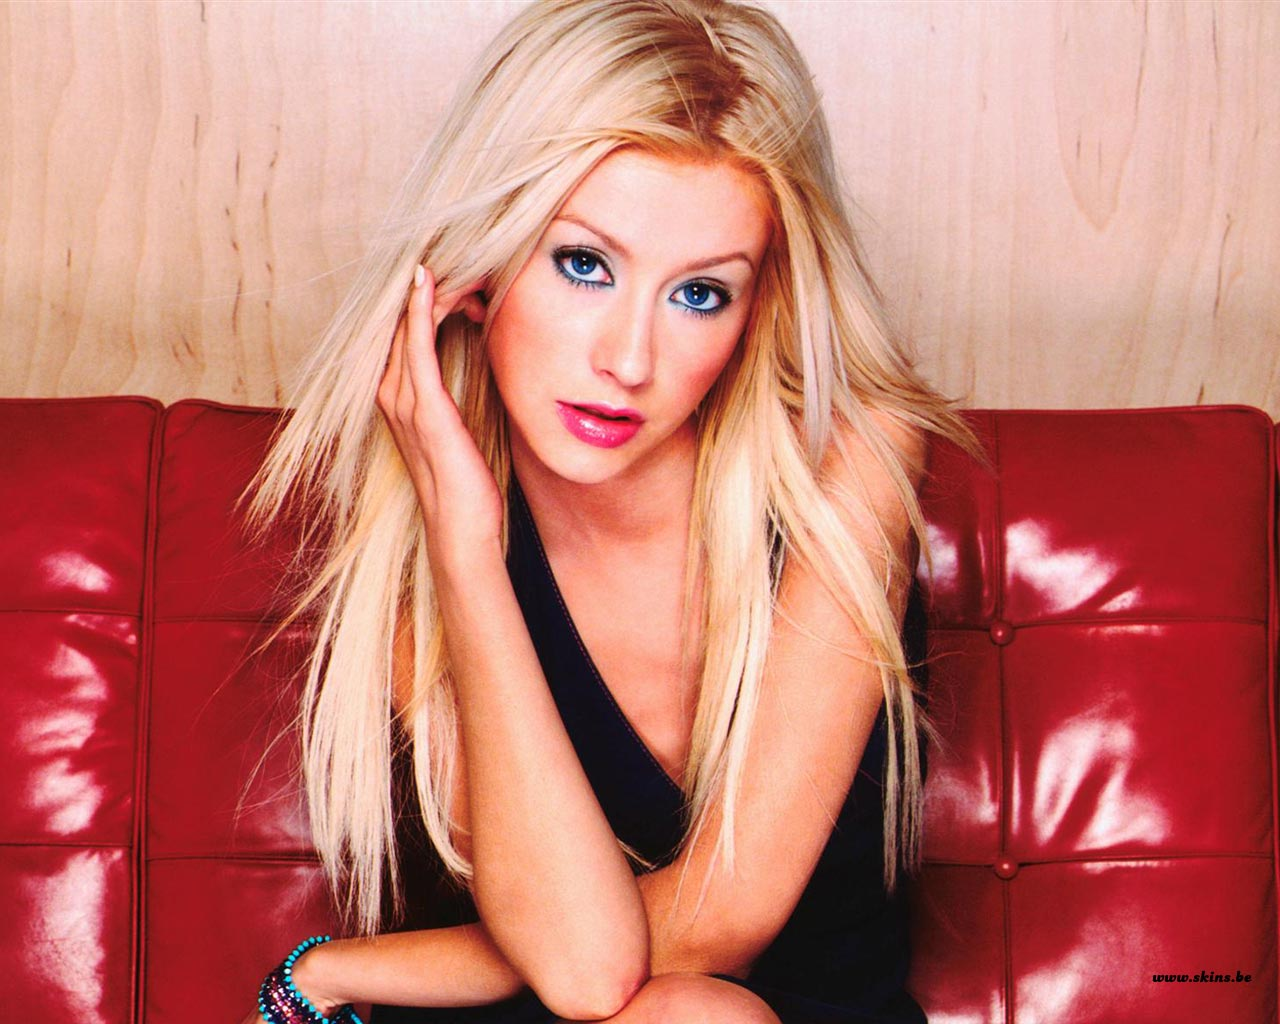 Christina Aguilera Photos Christina Aguilera Photos Christina Aguilera